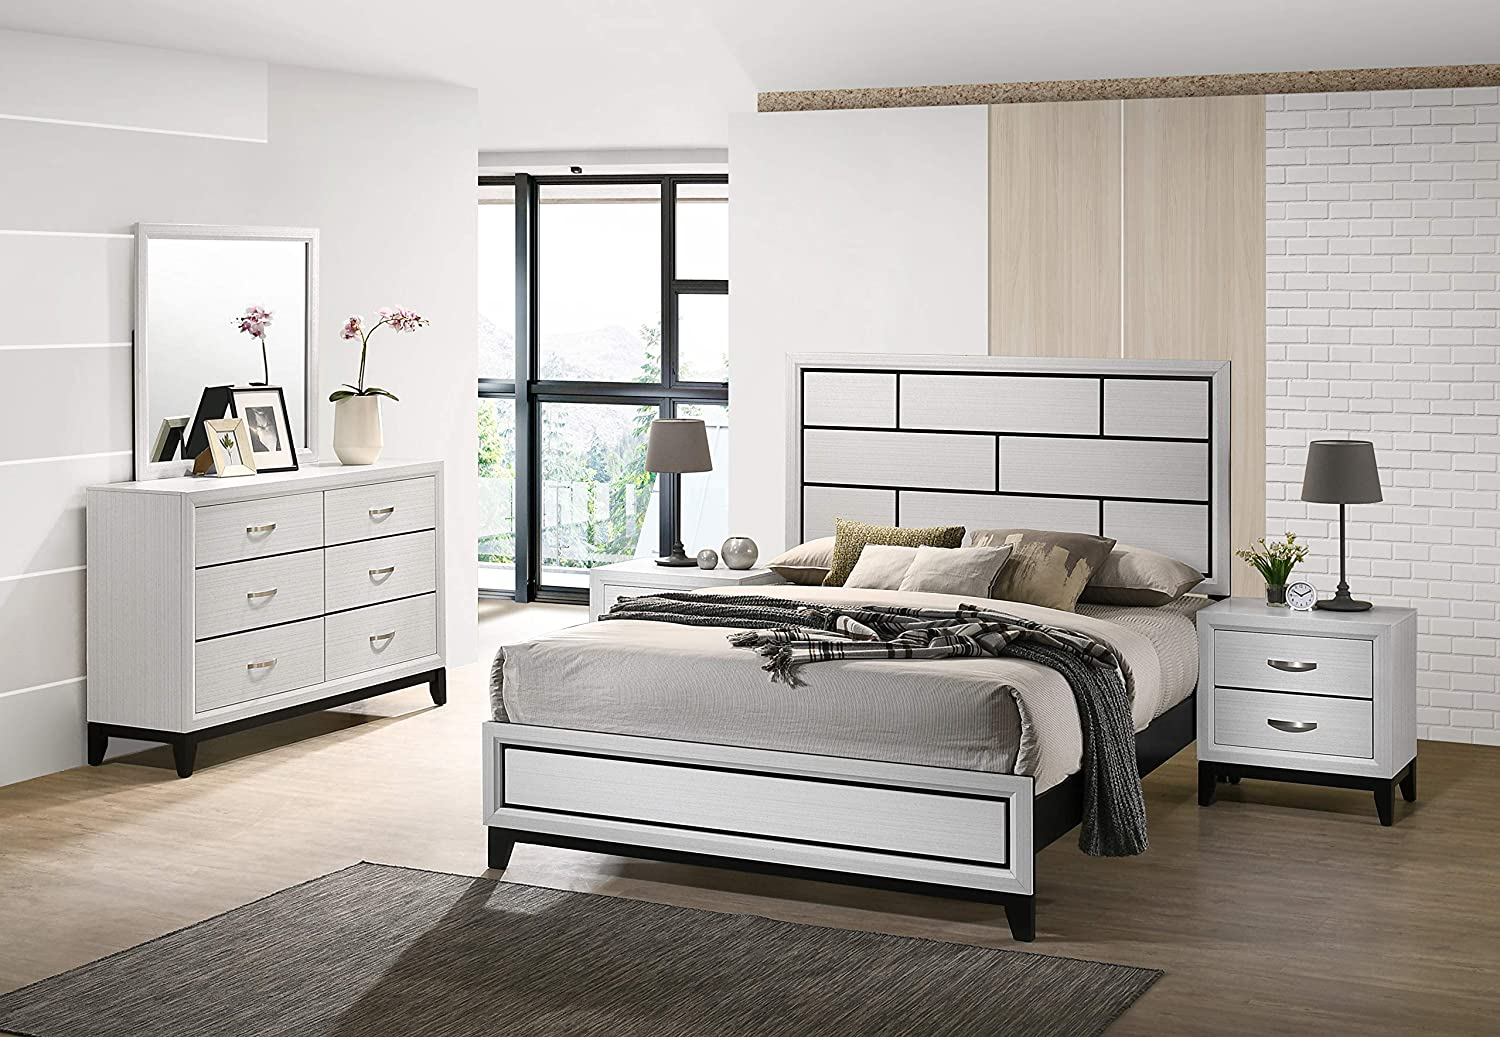 Roundhill Furniture Stout Contemporary Panel Bedroom with Set Max Max 68% OFF 45% OFF Qu